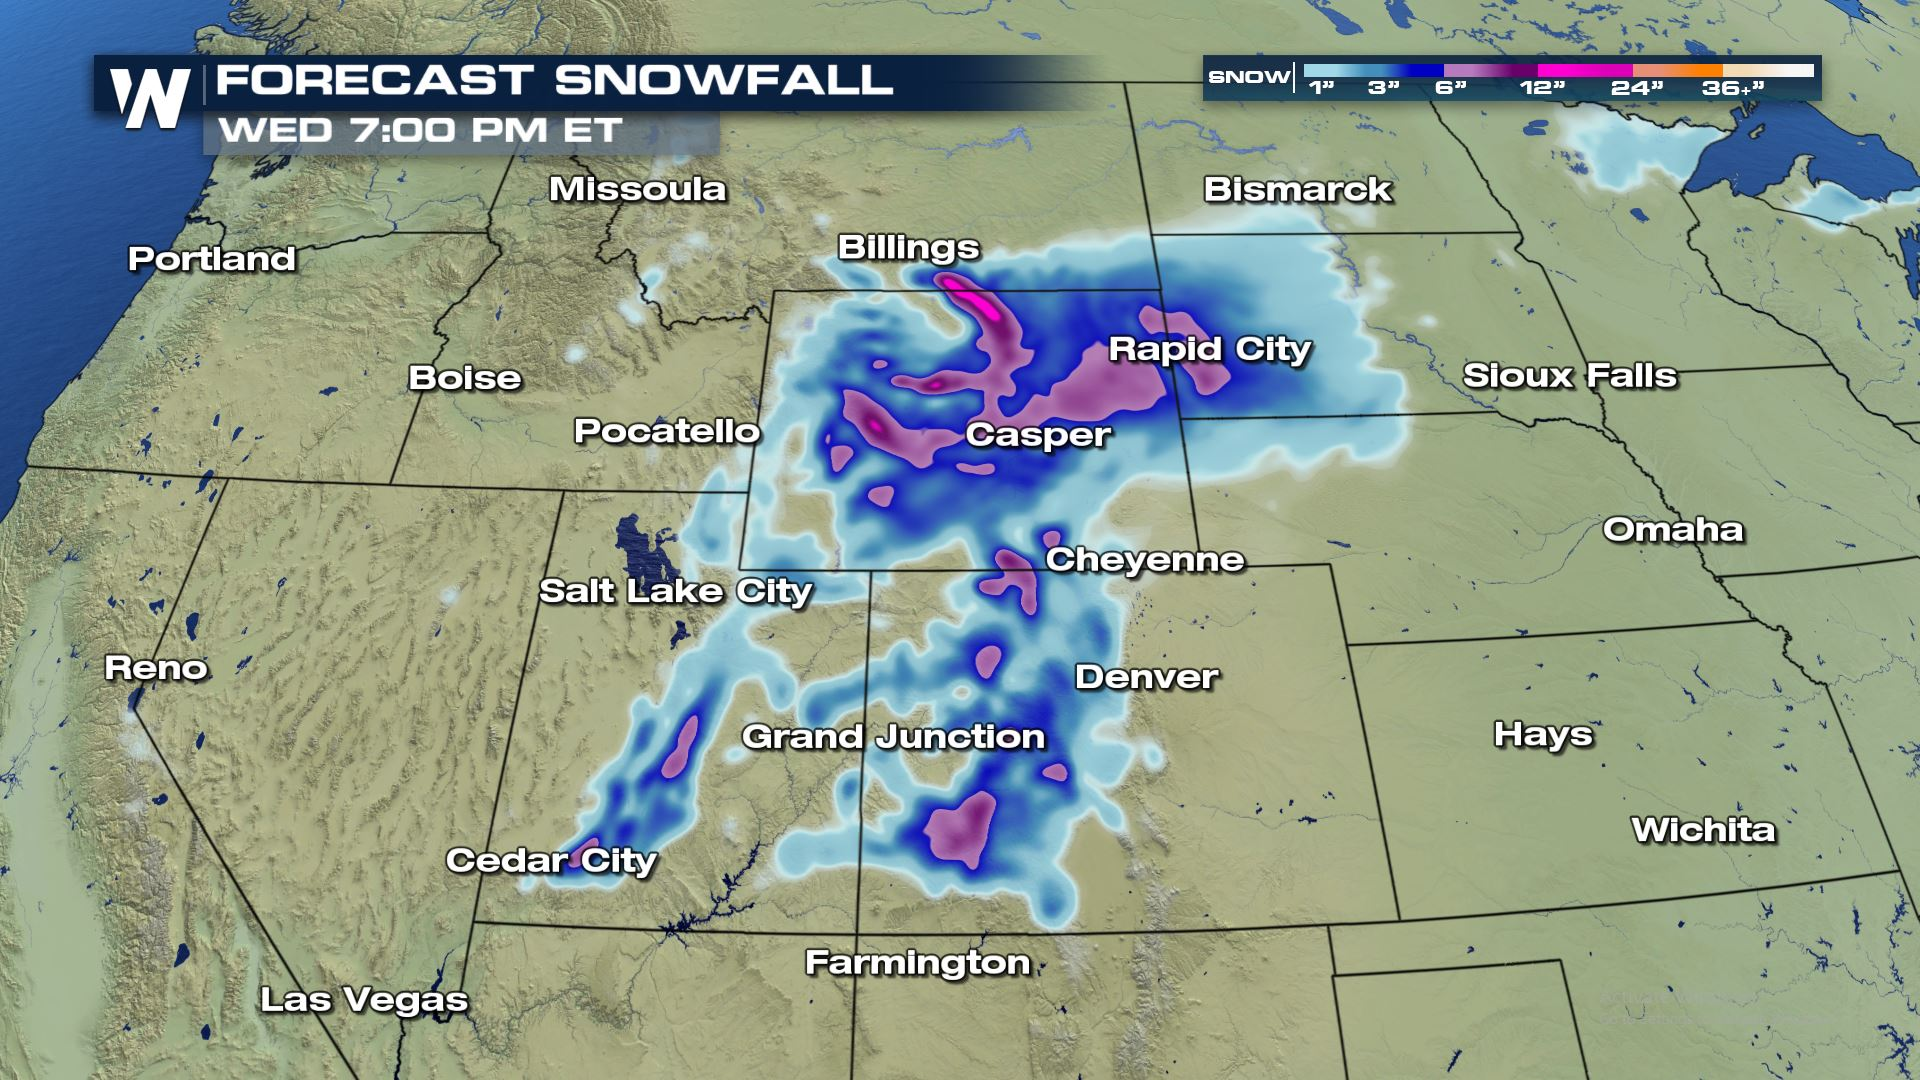 More Heavy Snow for the Rockies Wednesday